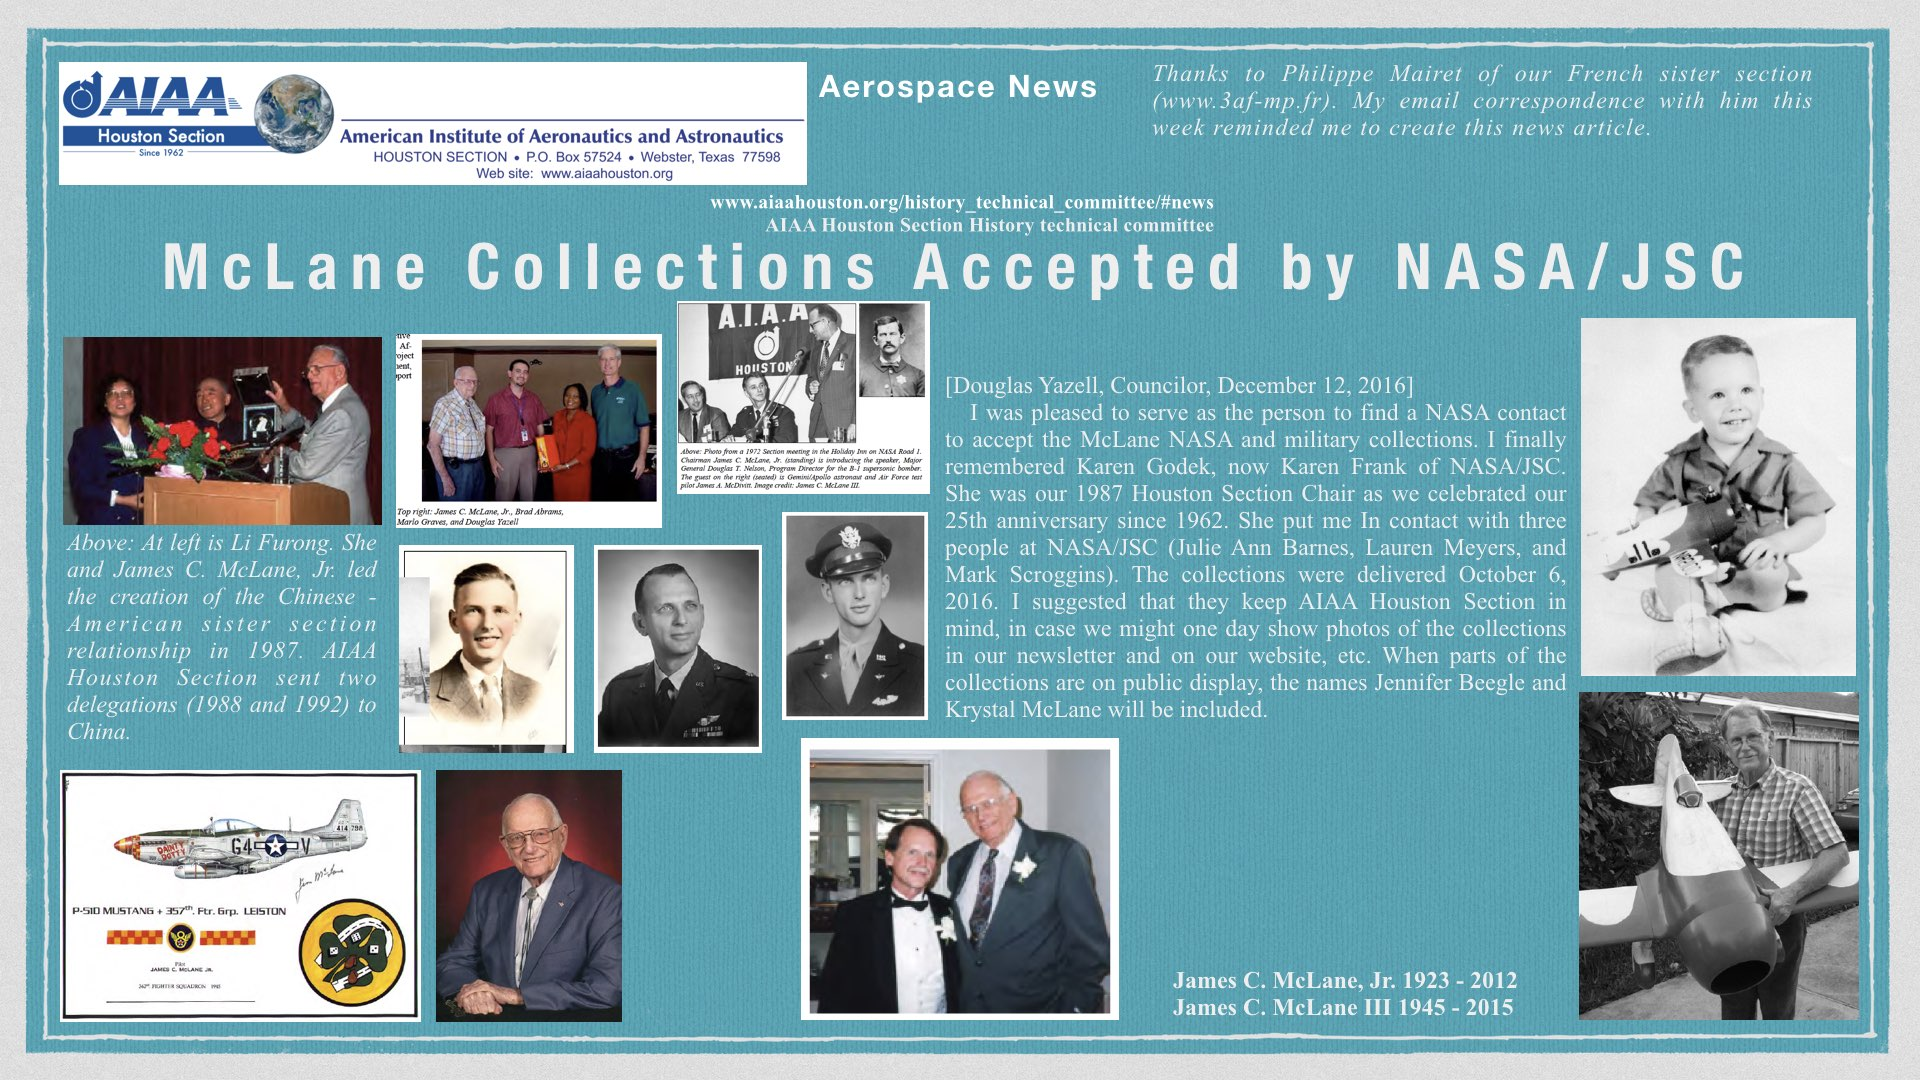 Above: McLane Collections Accepted by NASA/JSC. (Click to zoom.)